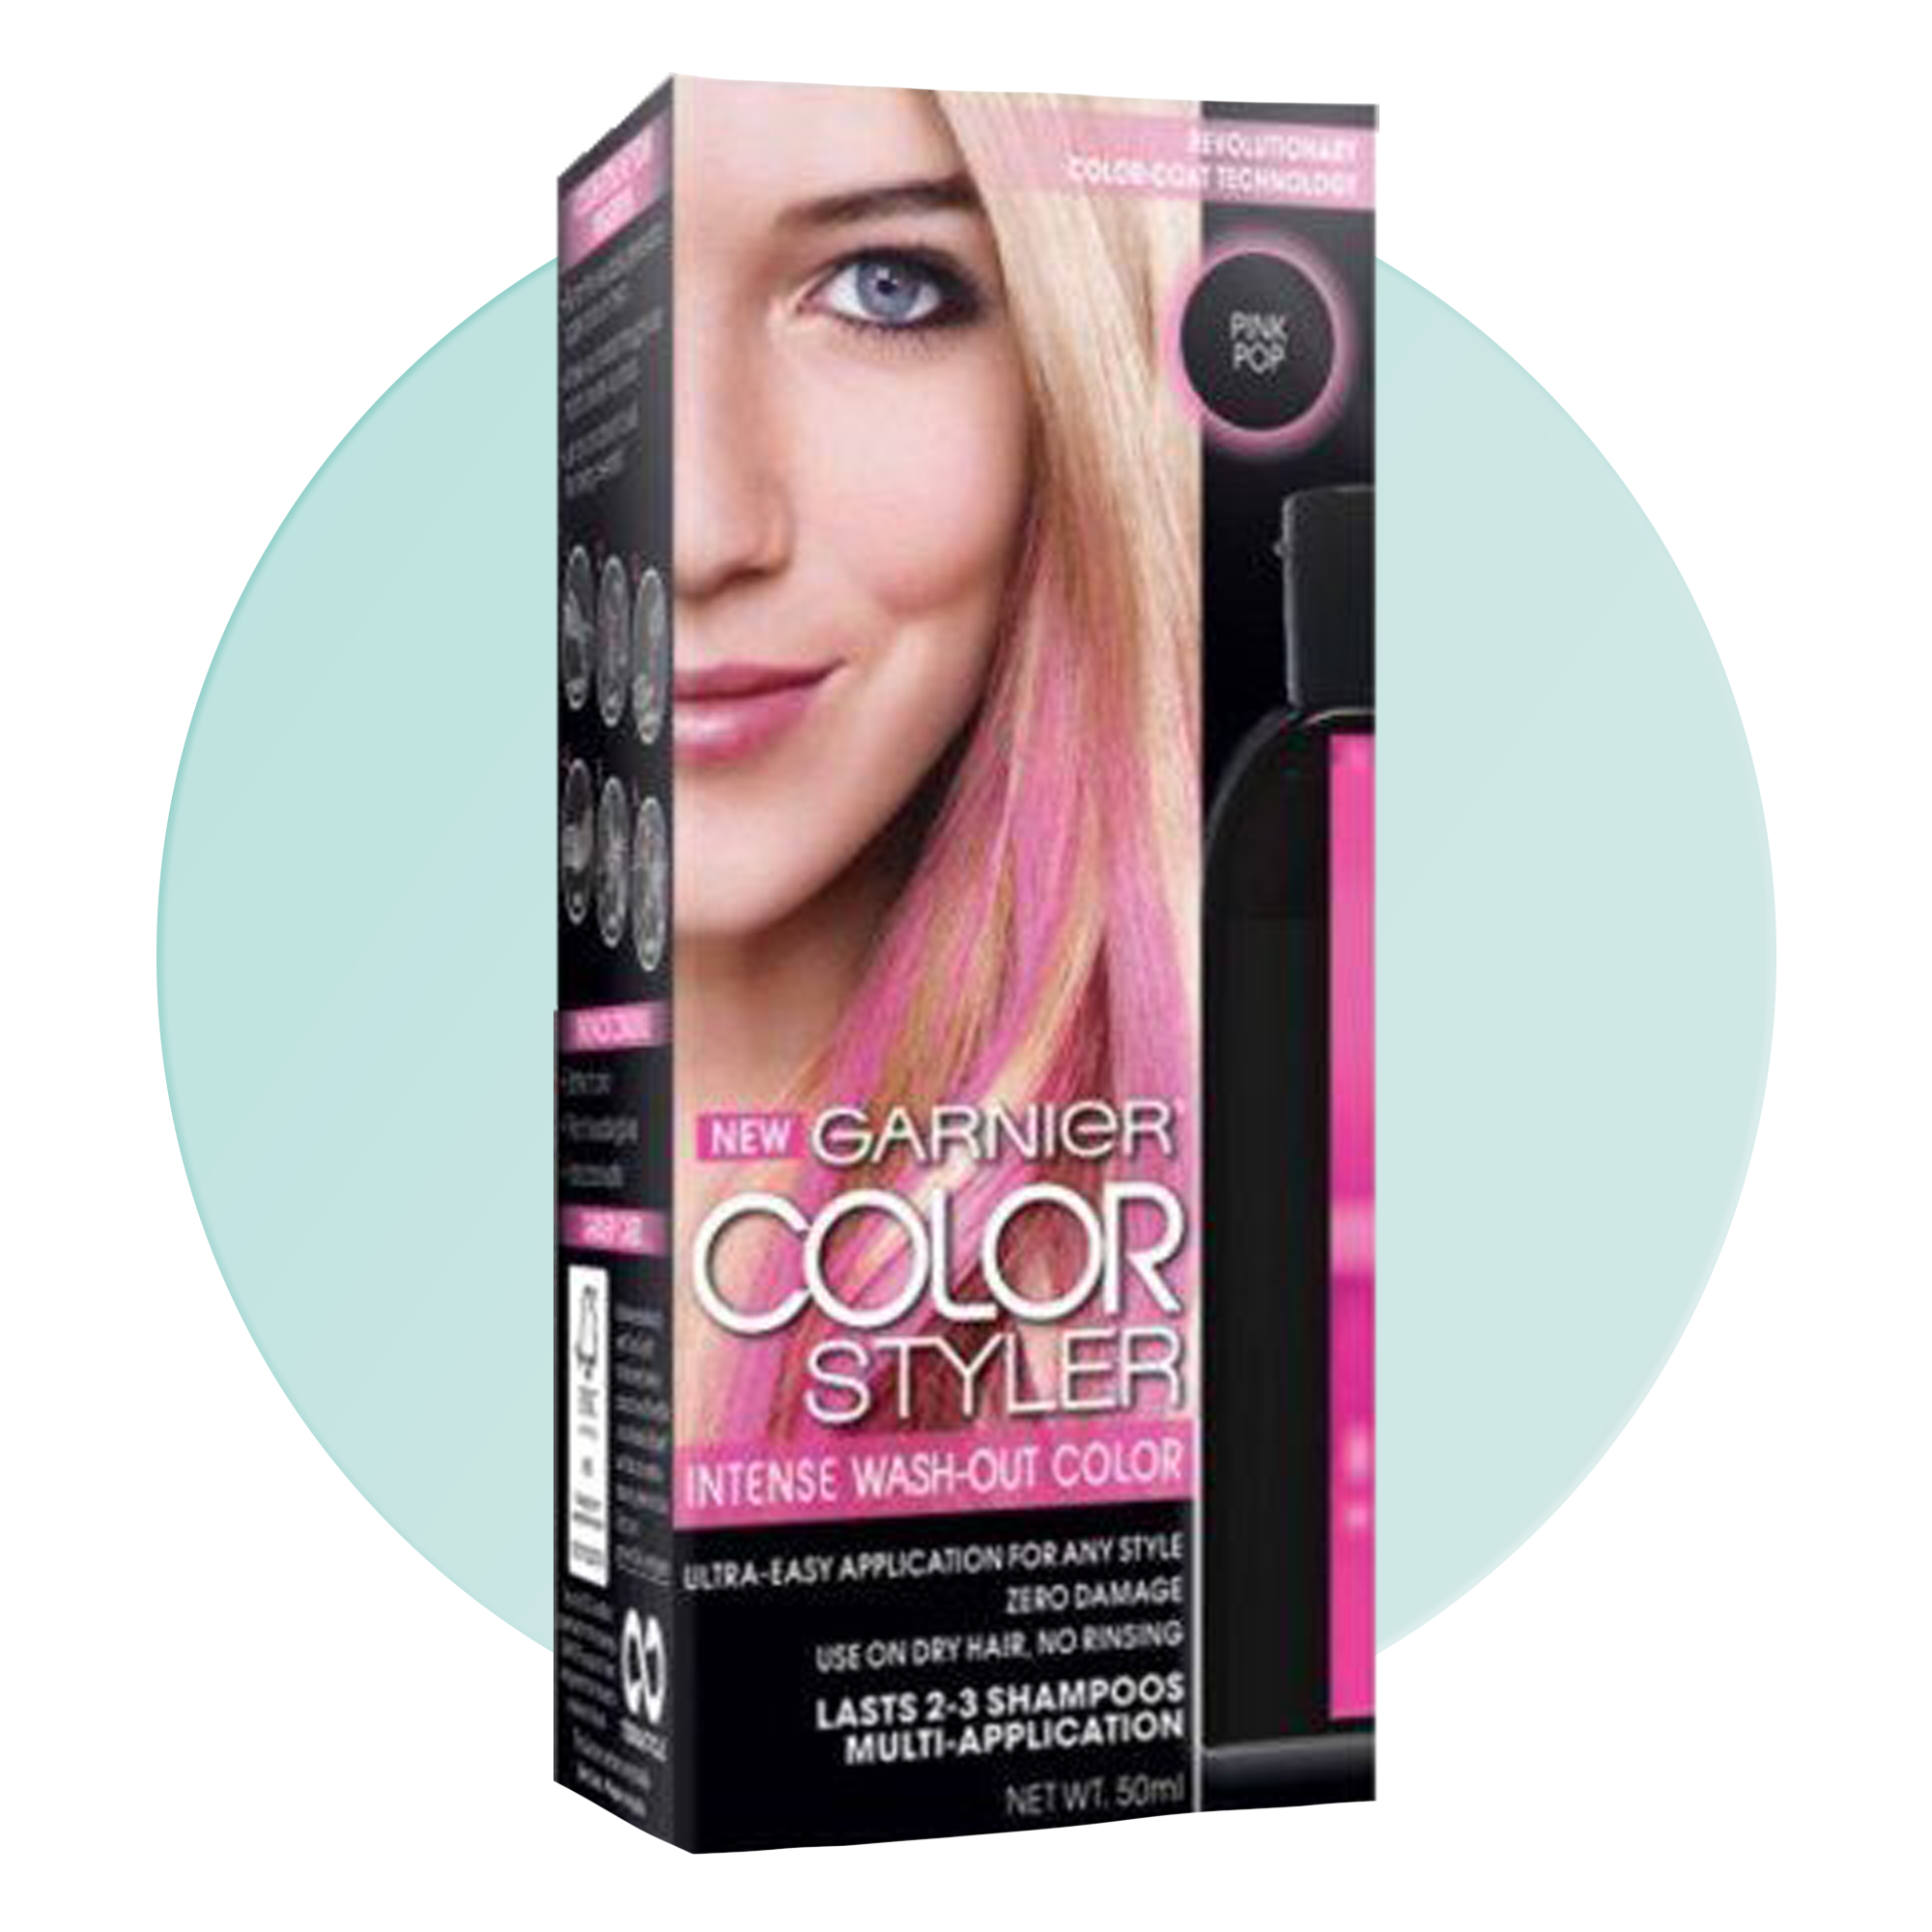 Color Styler Intense Wash-Out Haircolor